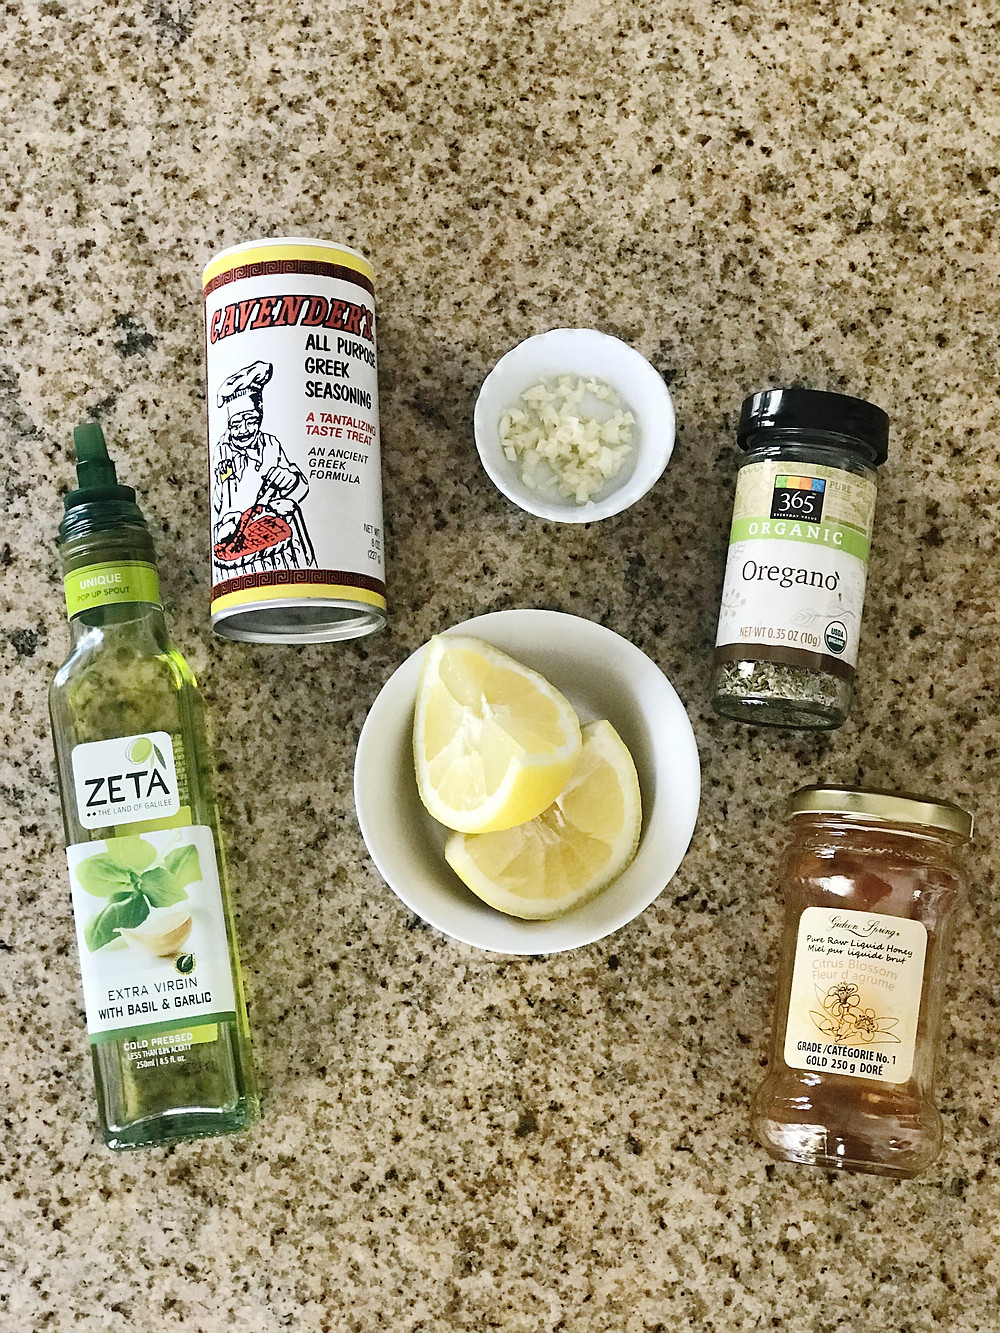 Zeta Olive Oil, Cavender's Greek Seasoning, Chopped Garlic, Organic Oregano, Sliced Lemons, & Honey